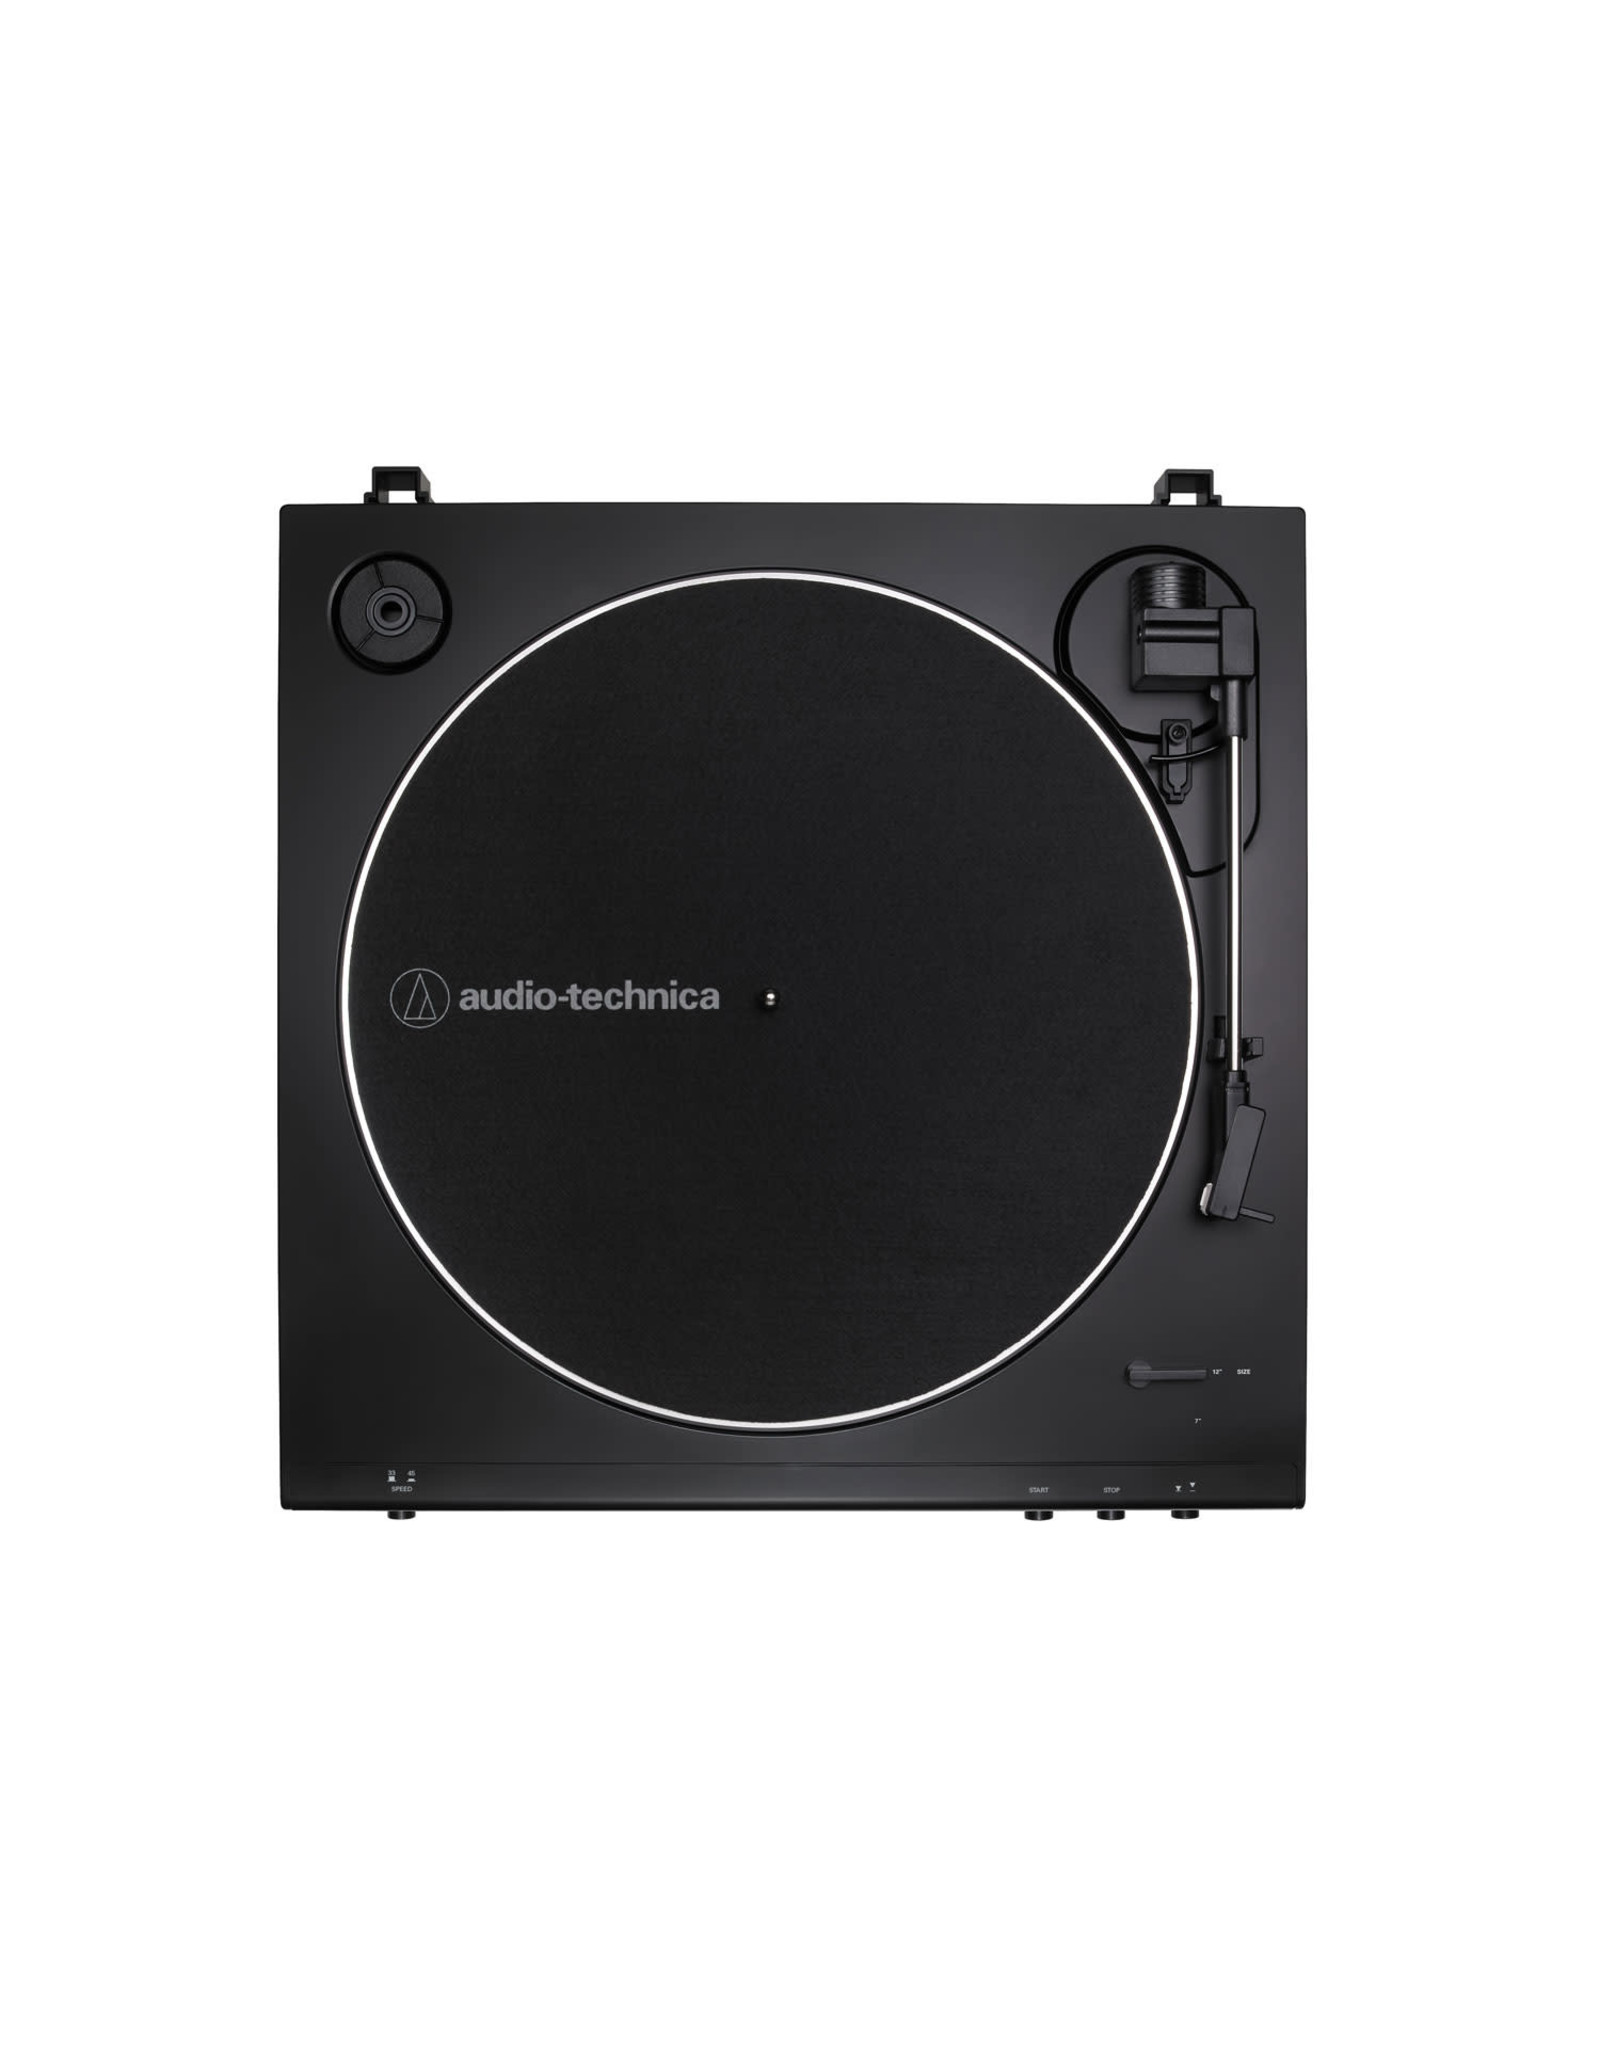 Audio-Technica Audio-Technica LP60X Automatic Turntable